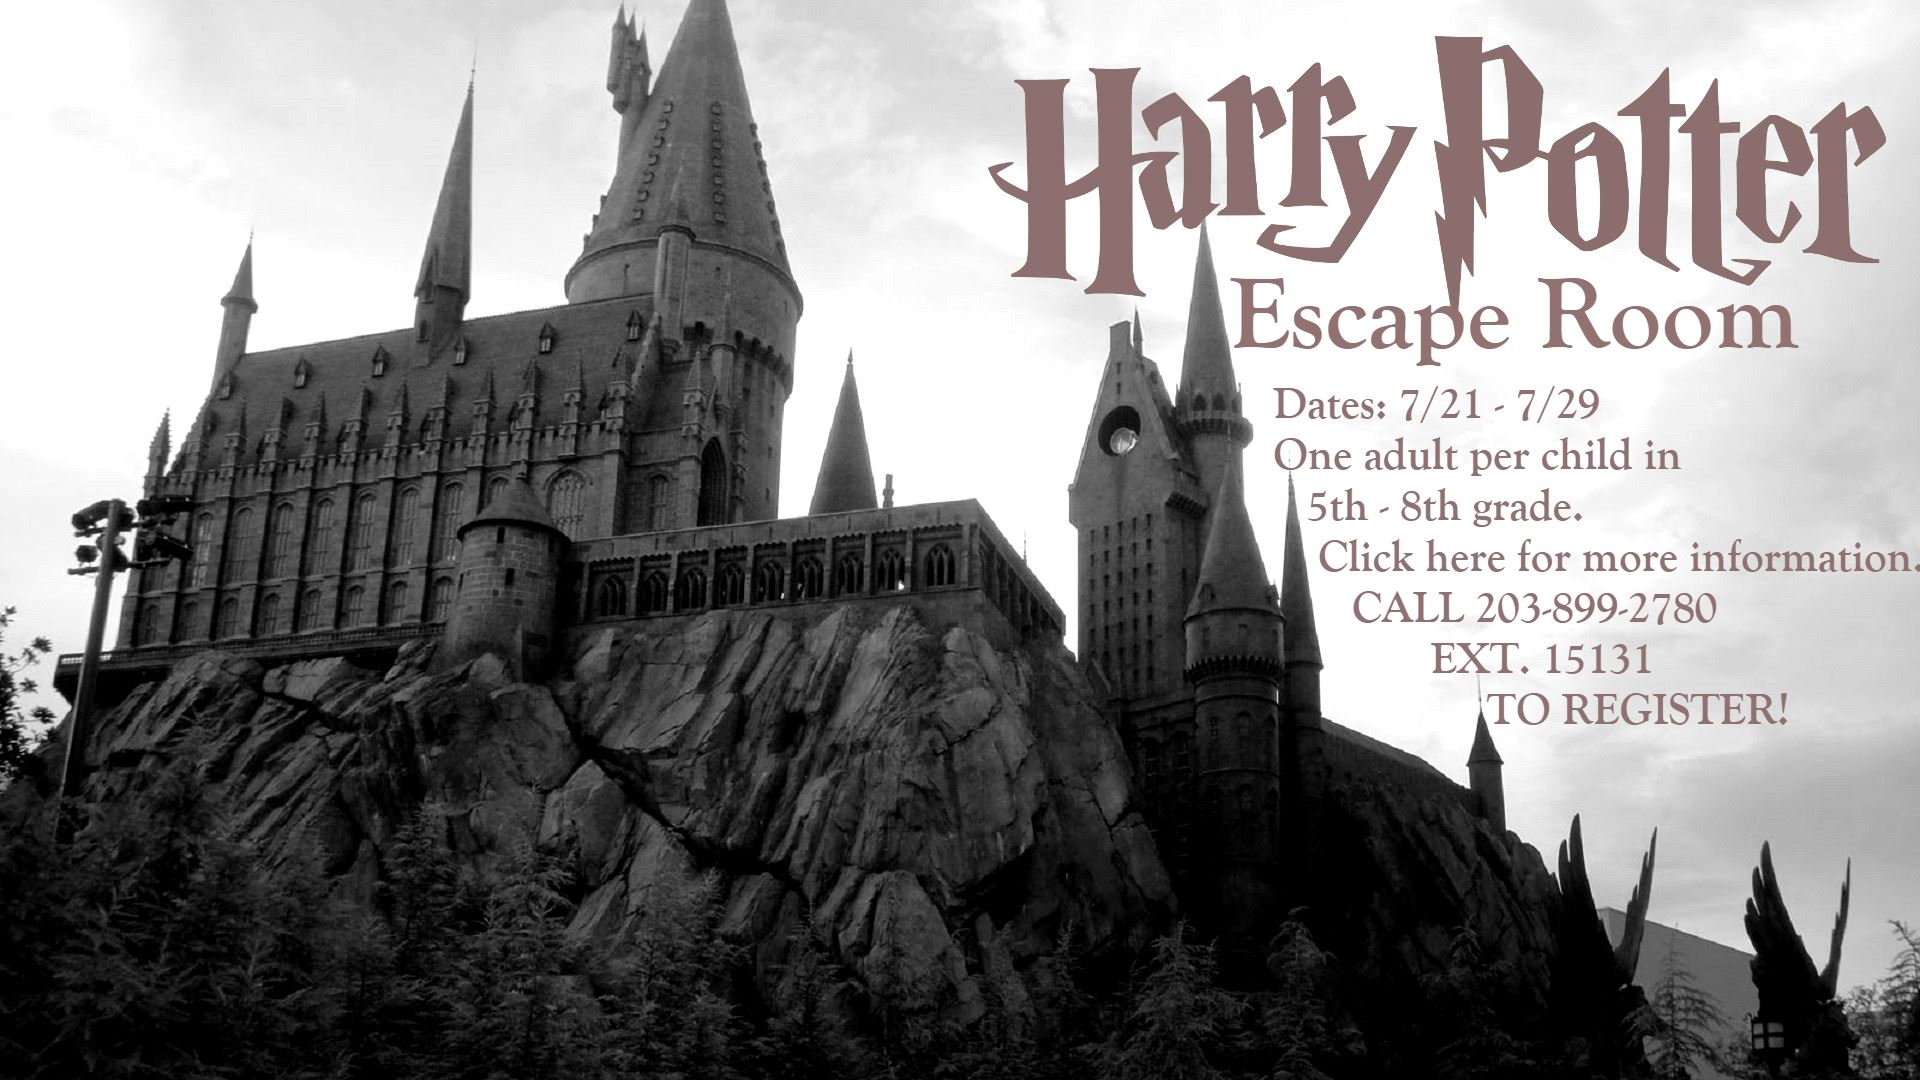 Harry Potter Picture for Escape Room